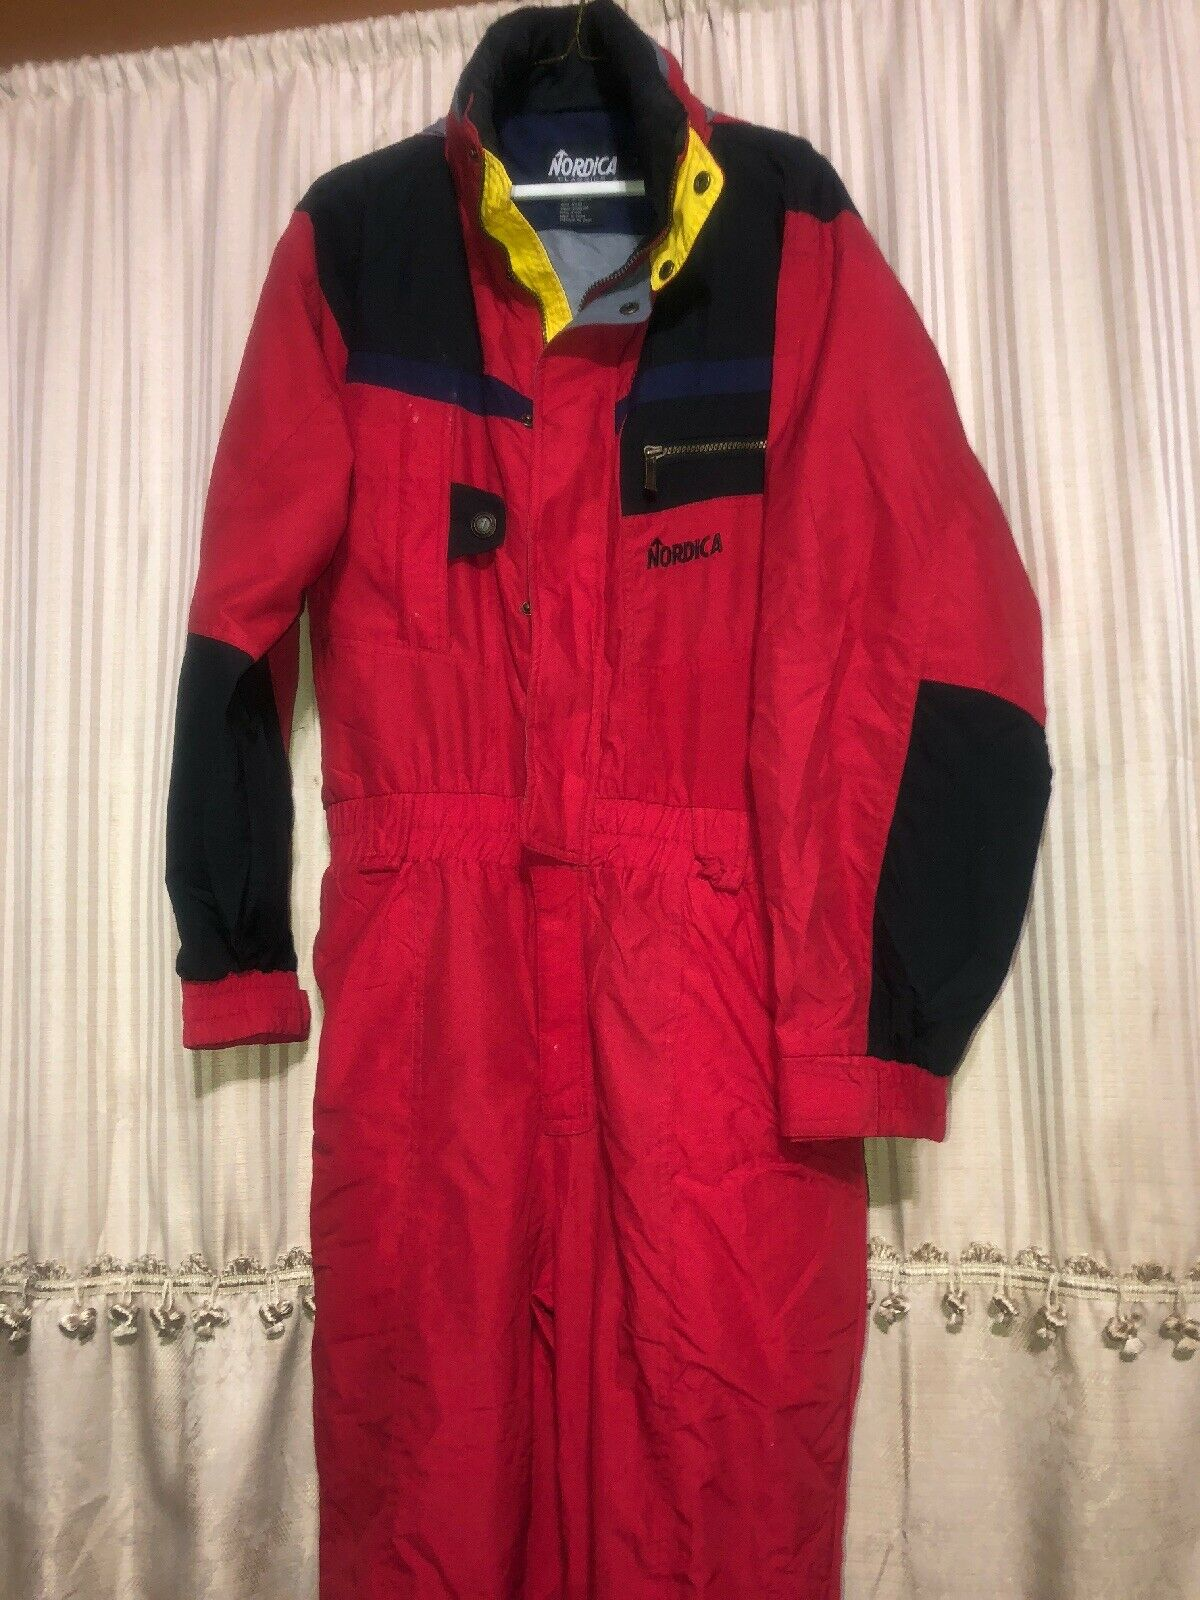 NORDICA Red Multicolor One Piece SKI SUIT vtg 80s  90s Hoody Bib Snowsuit Sz S P  choices with low price